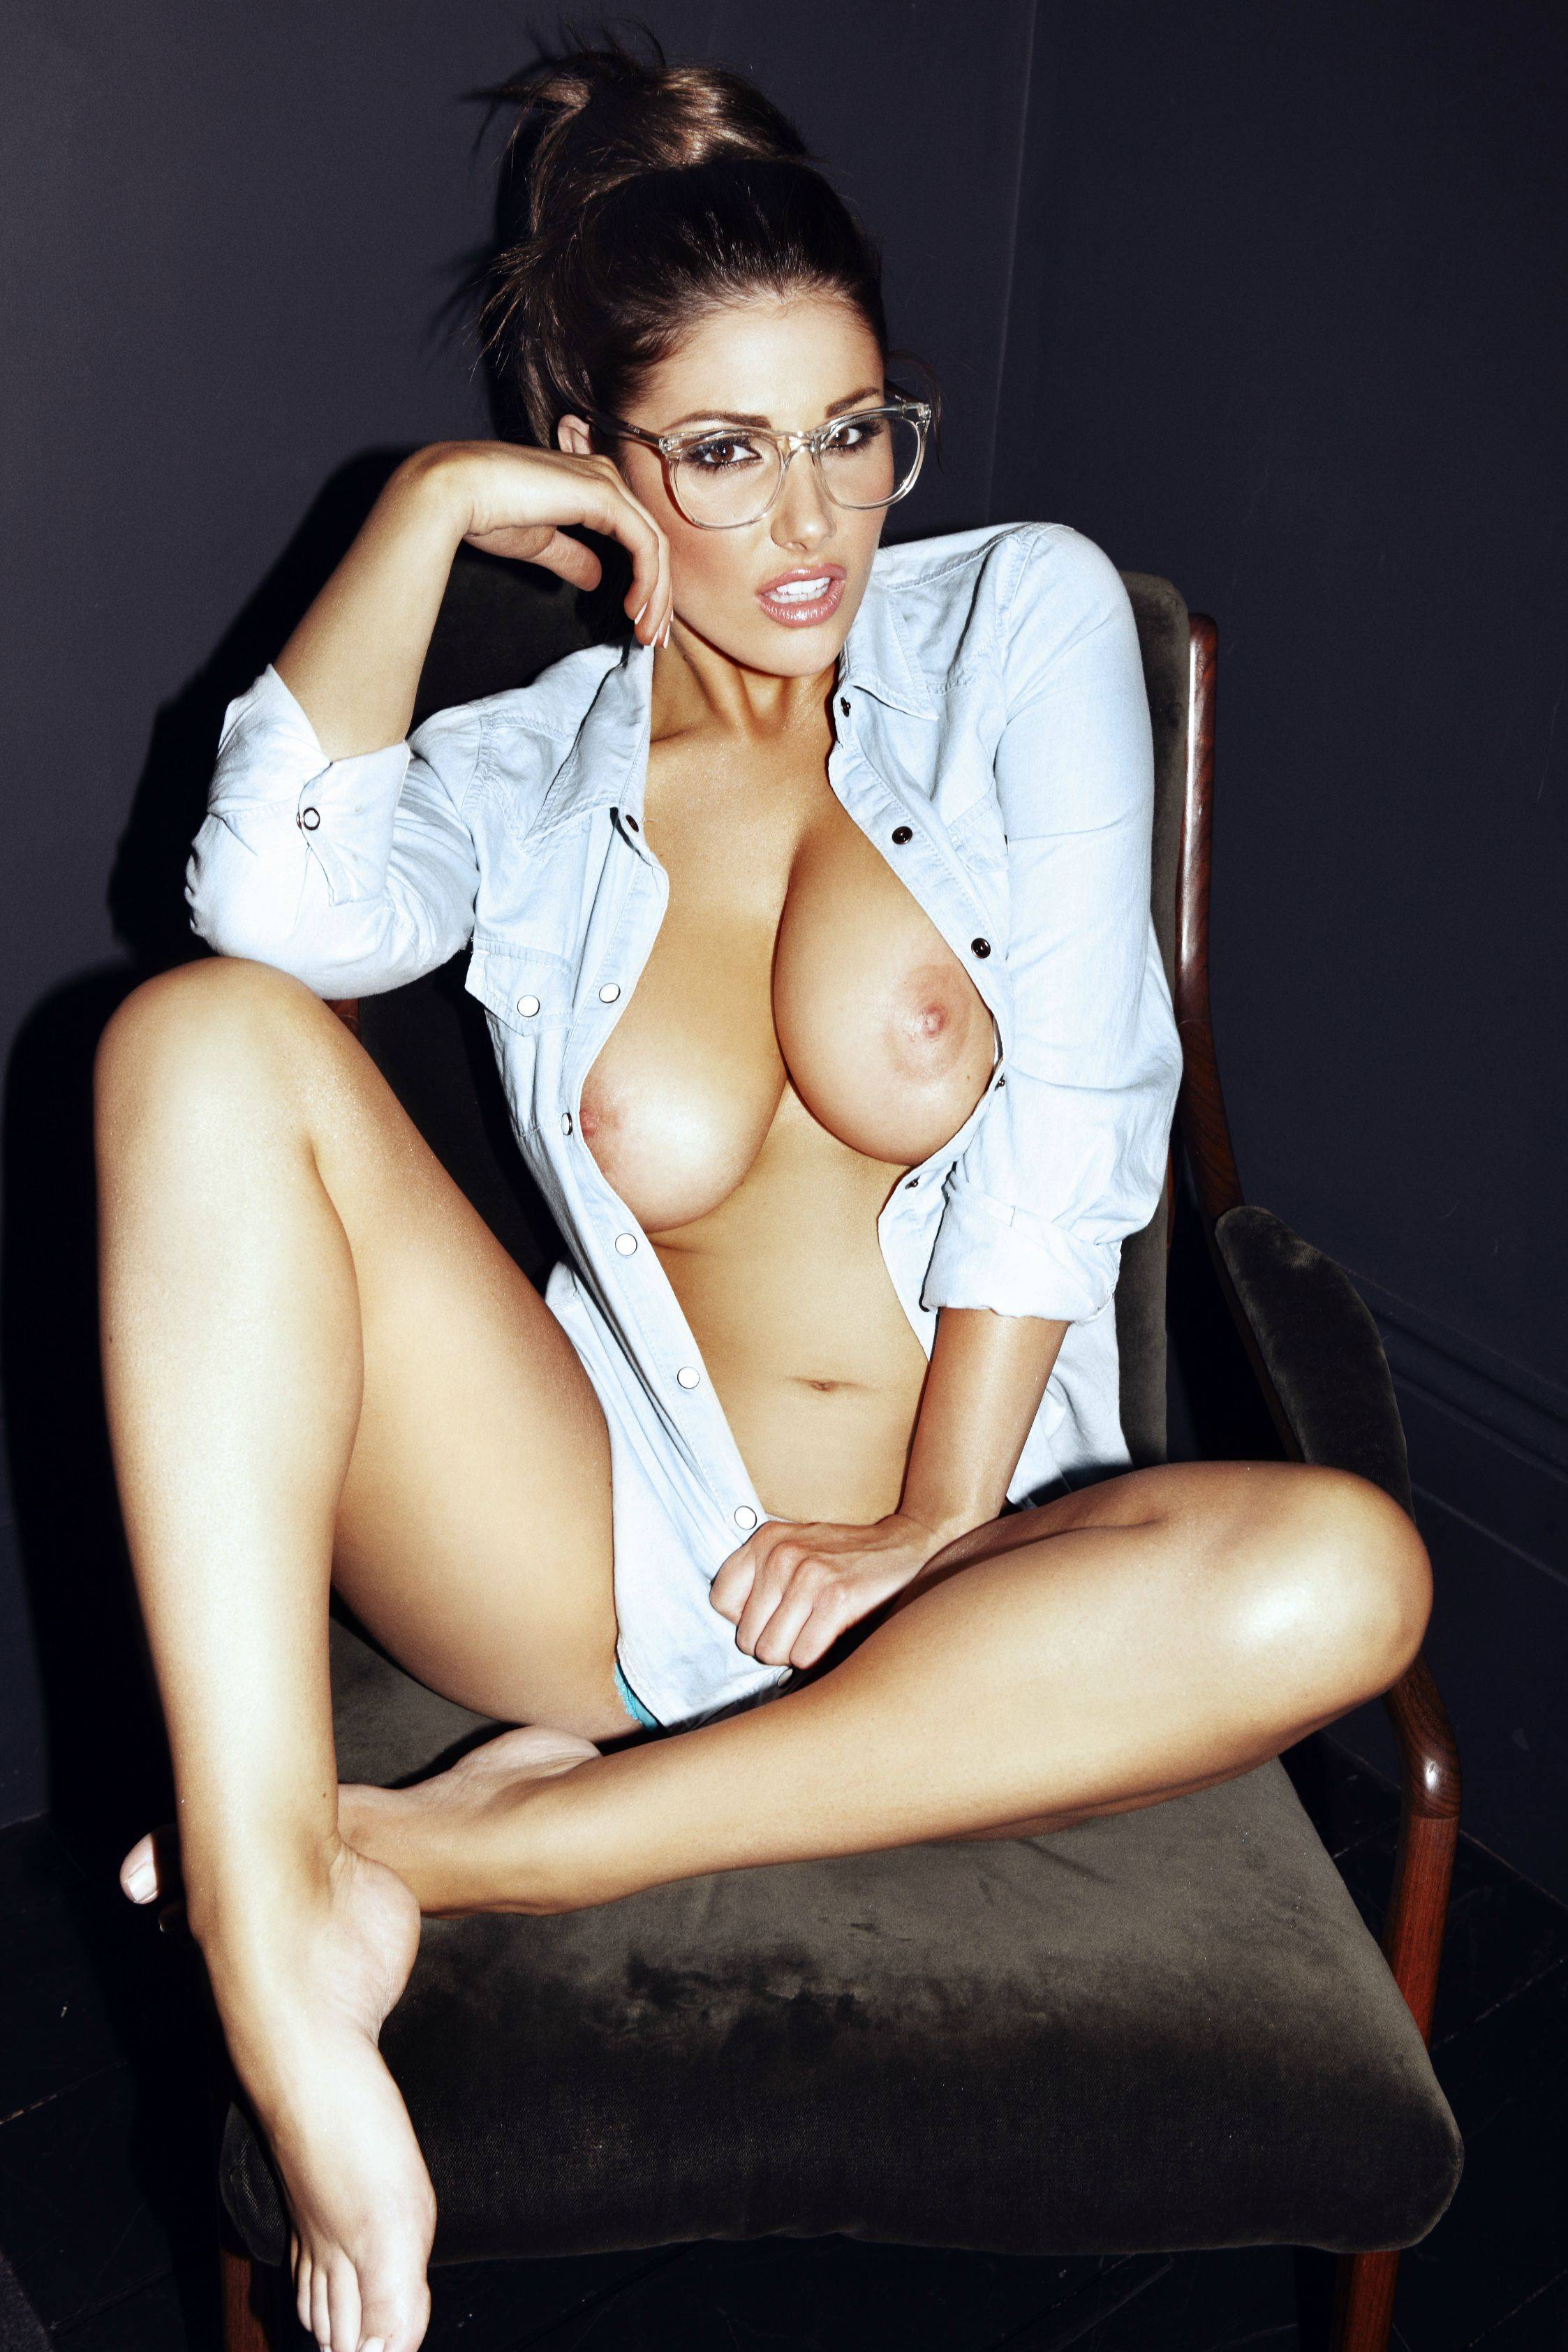 nude-girls-in-glasses-boobs-mix-vol2-48